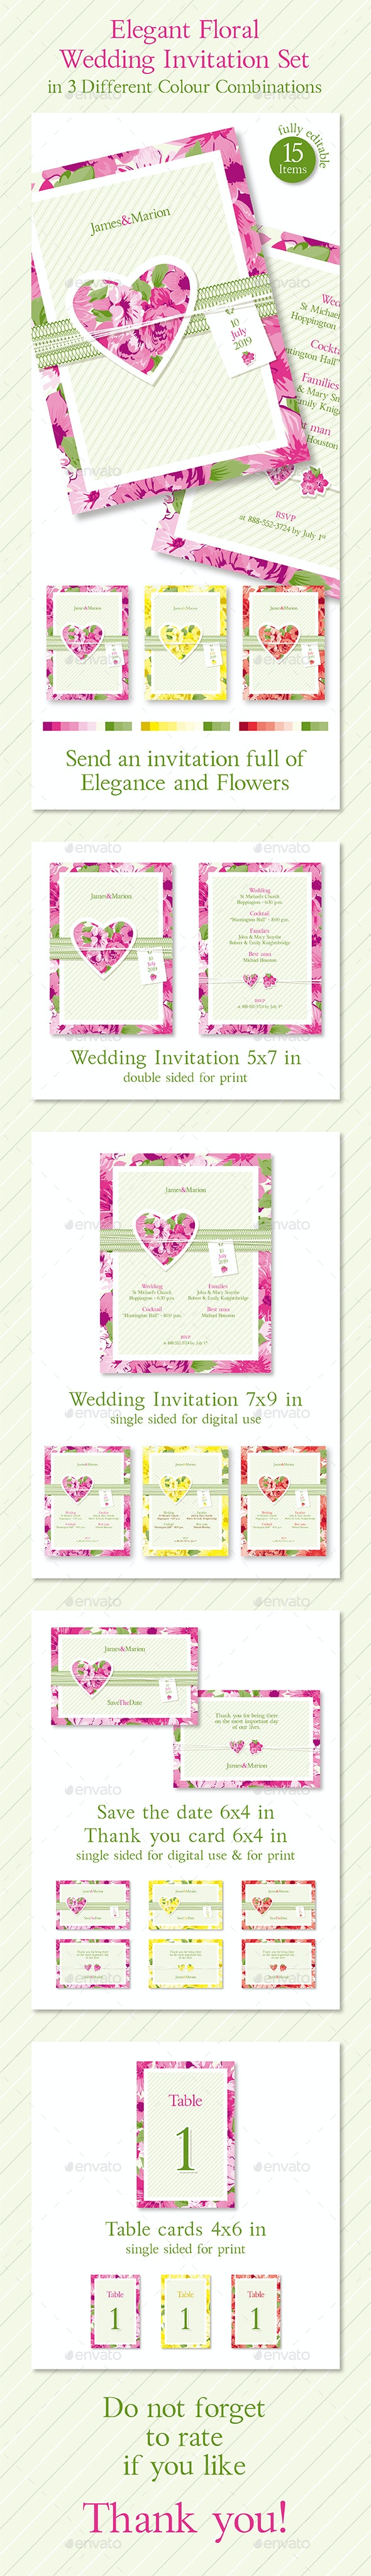 Elegant Floral Wedding Invitation in 3 Different Color Combinations - Weddings Cards & Invites